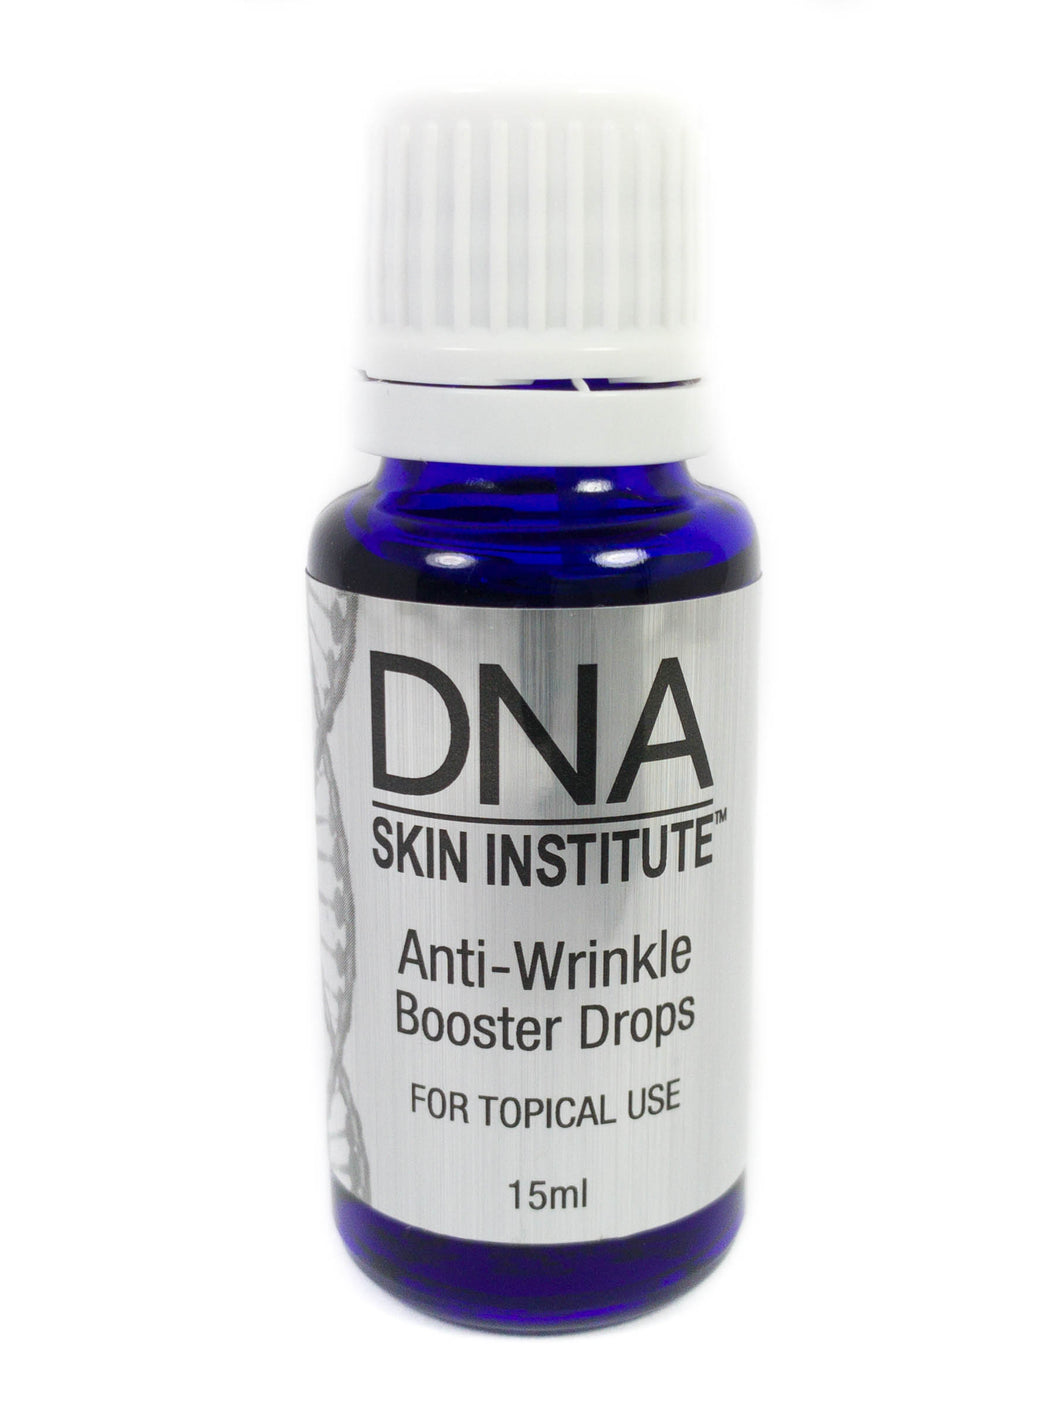 Anti-Wrinkle Booster Drops